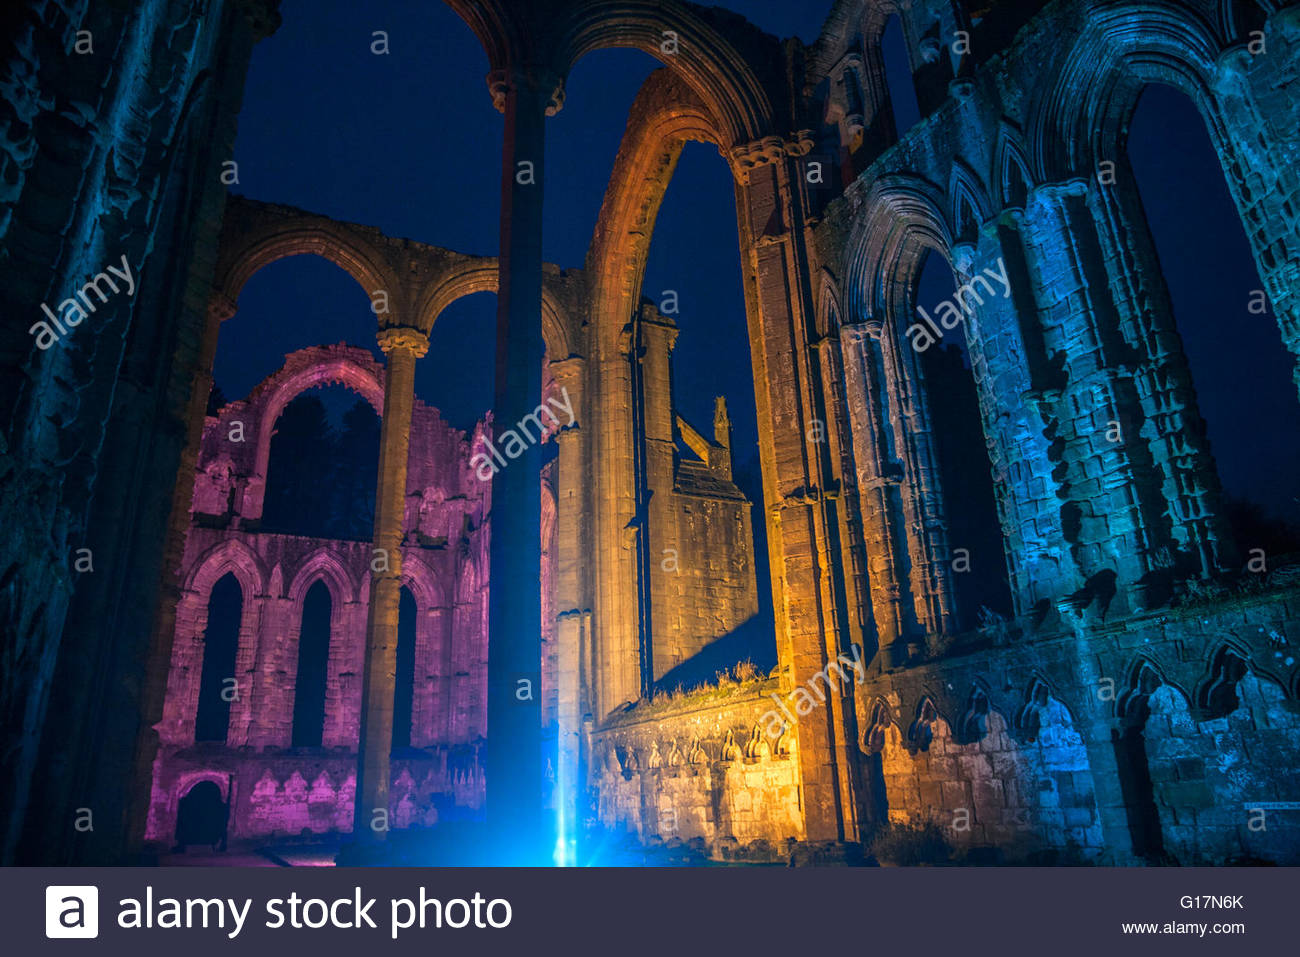 Fountains Abbey, Ripon, Yorkshire - Stock Image